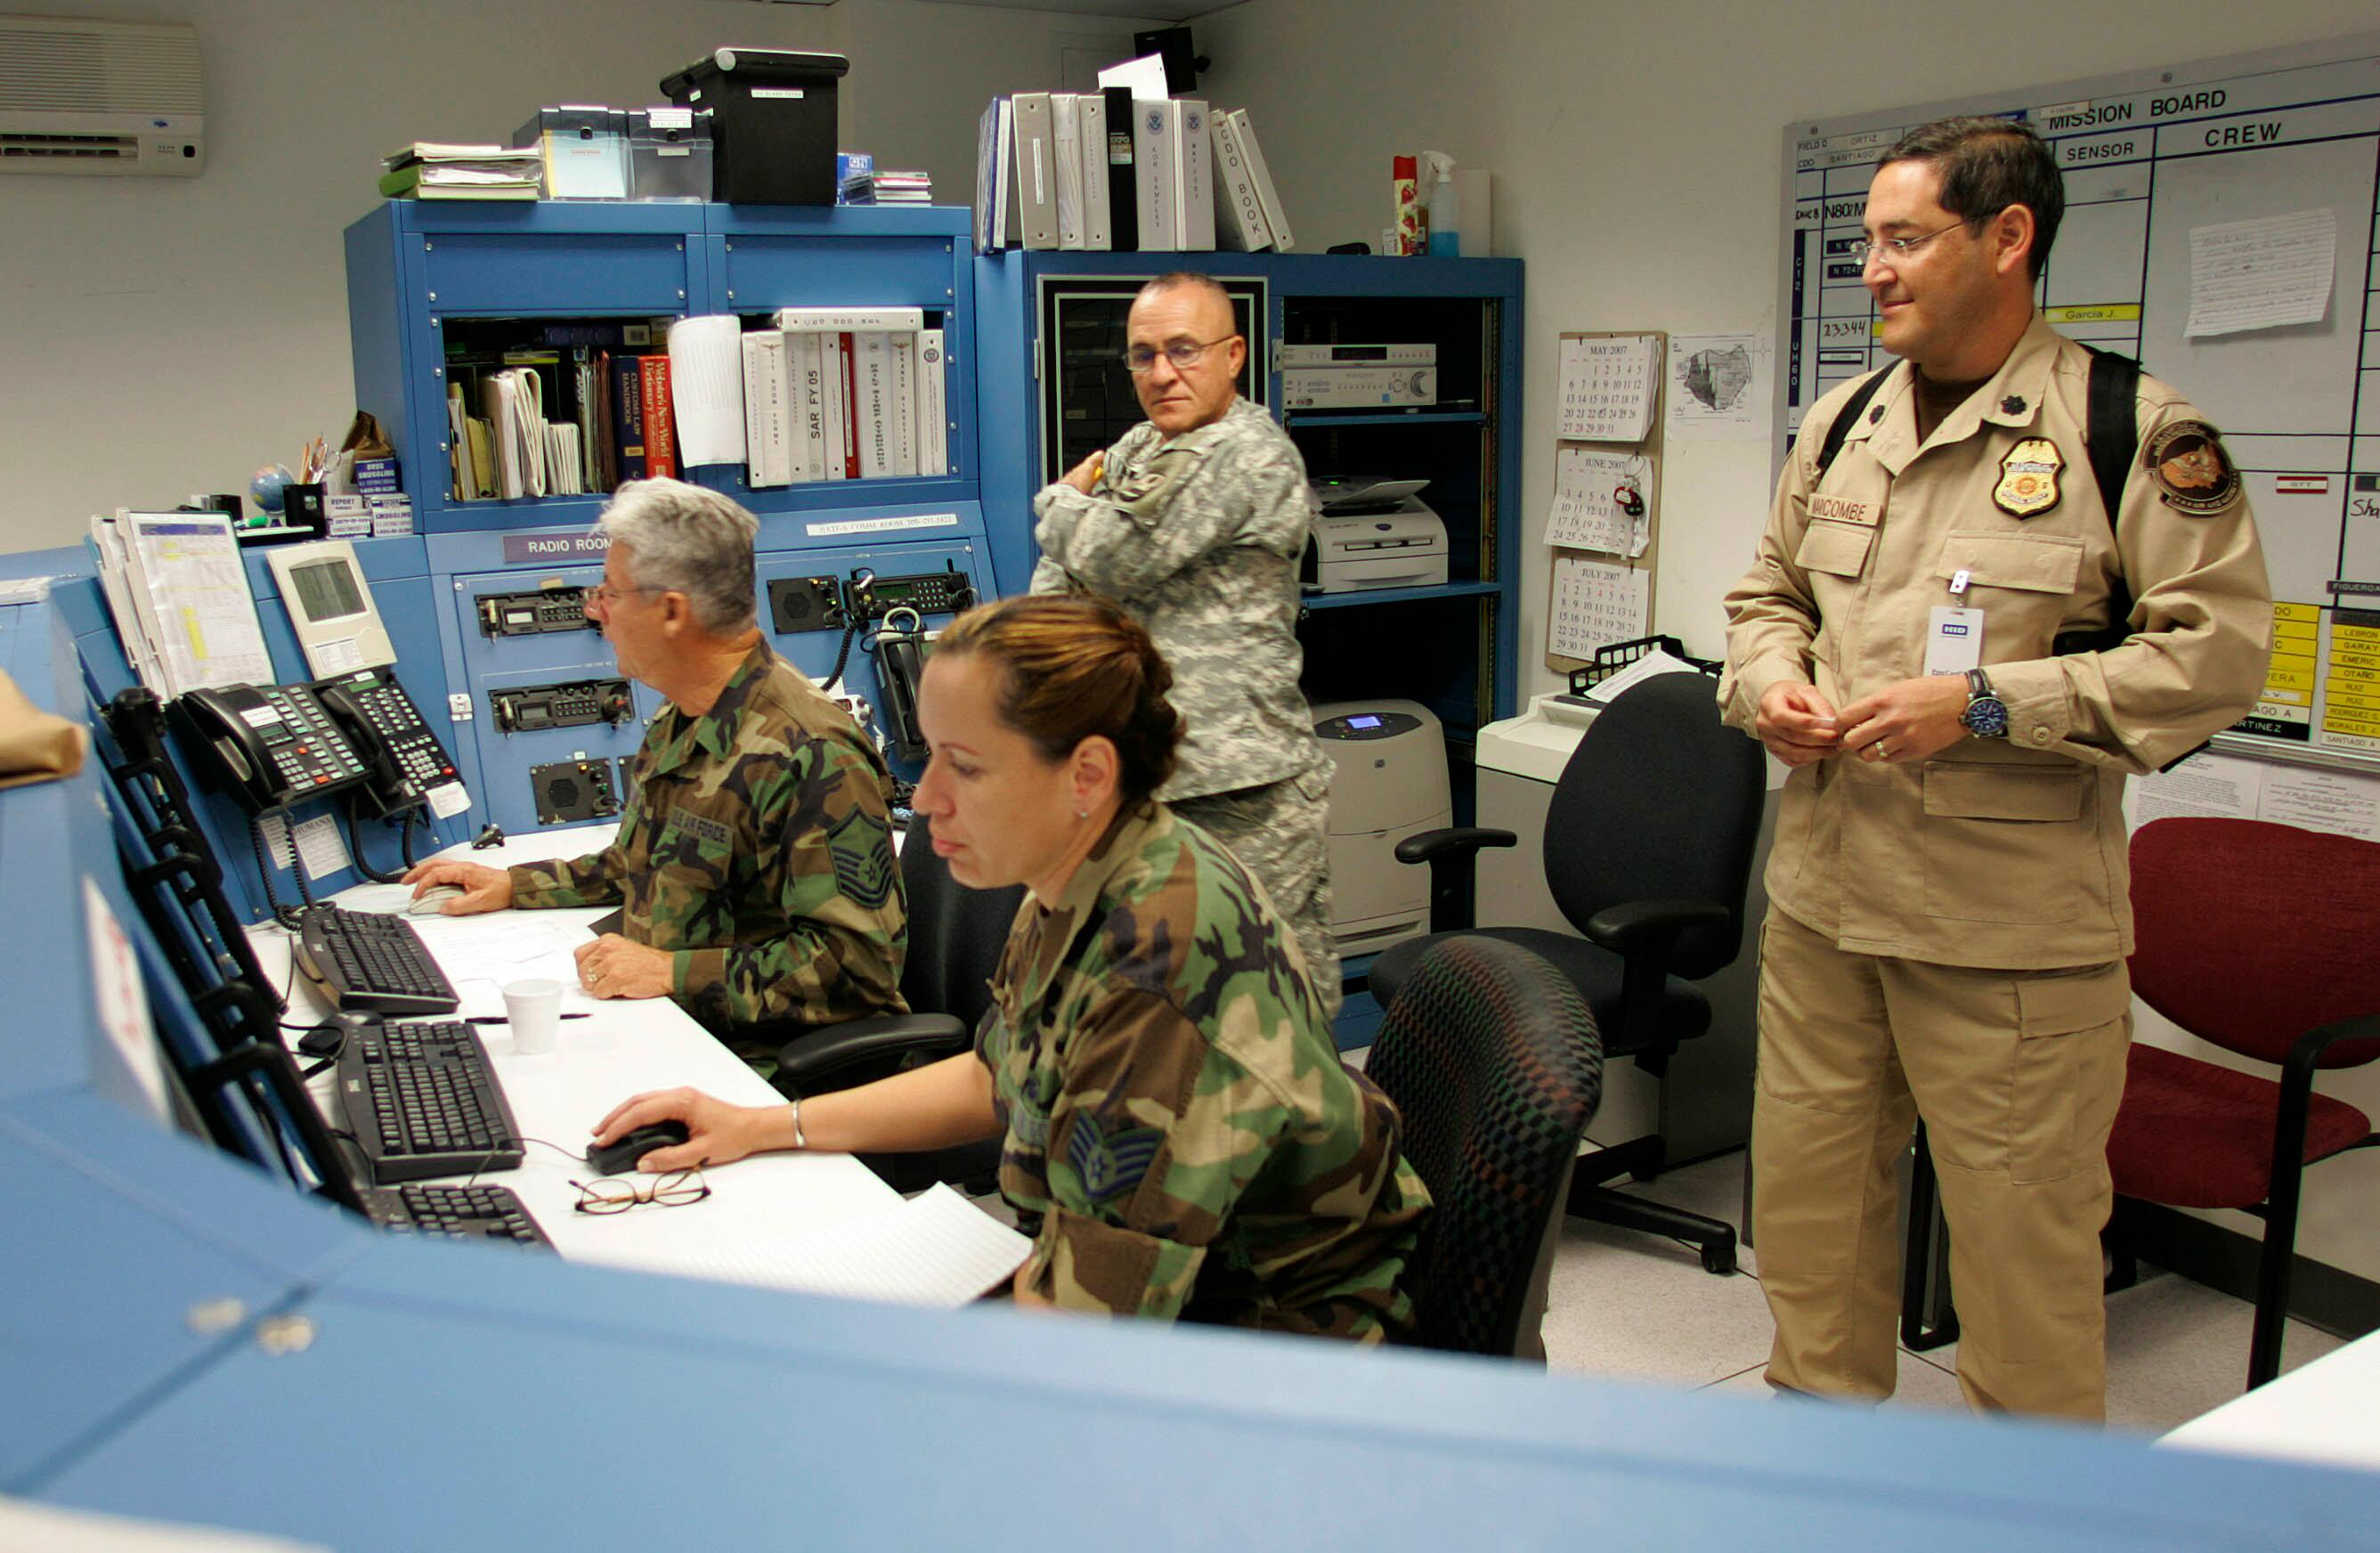 Customs and Border Protection works side by side with interagency partners at the Caribbean Air and Marine Operations Center.